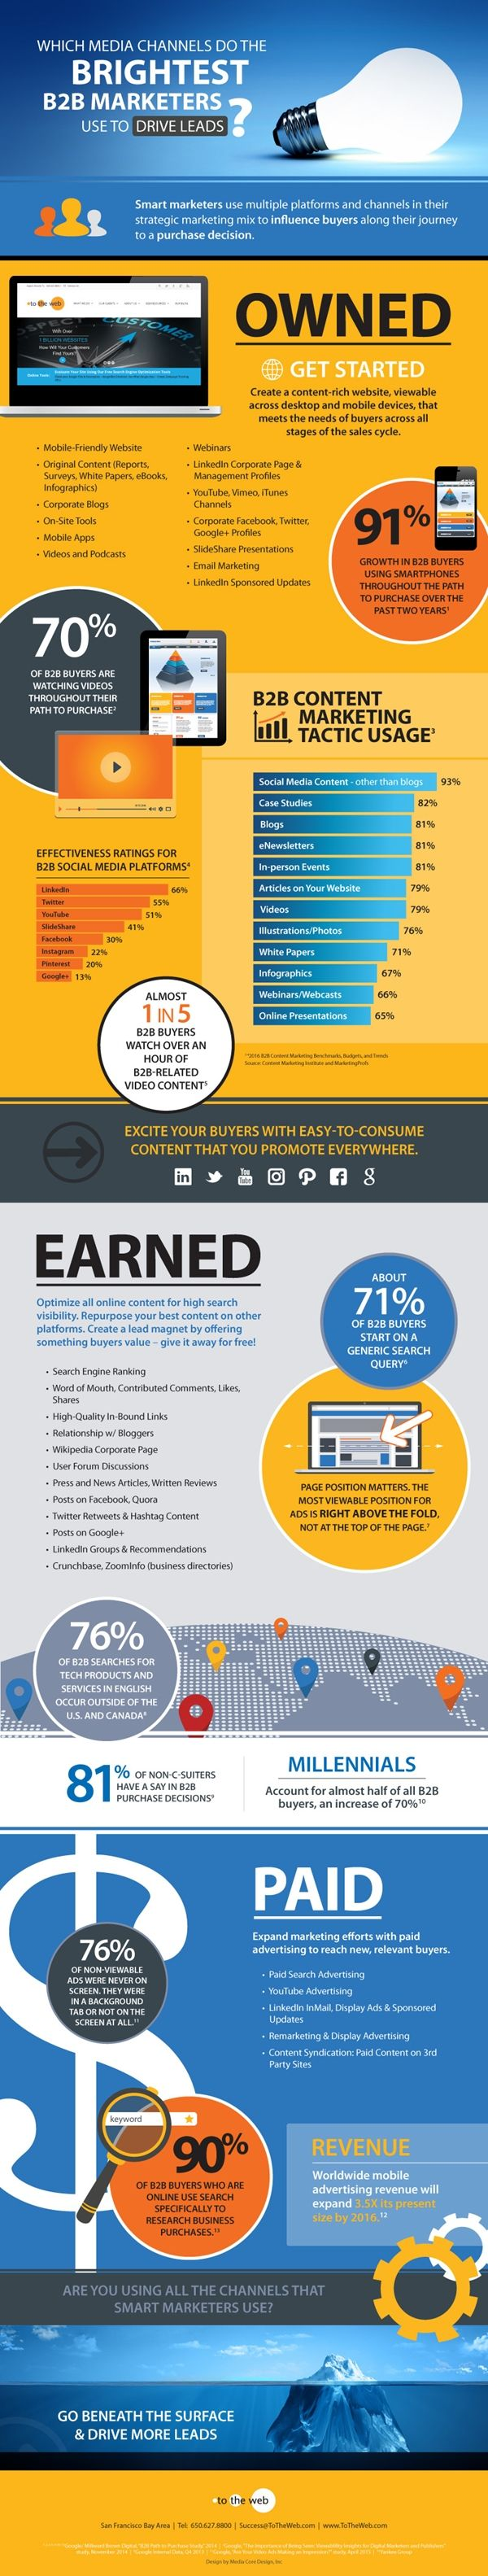 Infographic Media Channels the Brightest B2B Marketers Use to Drive Leads